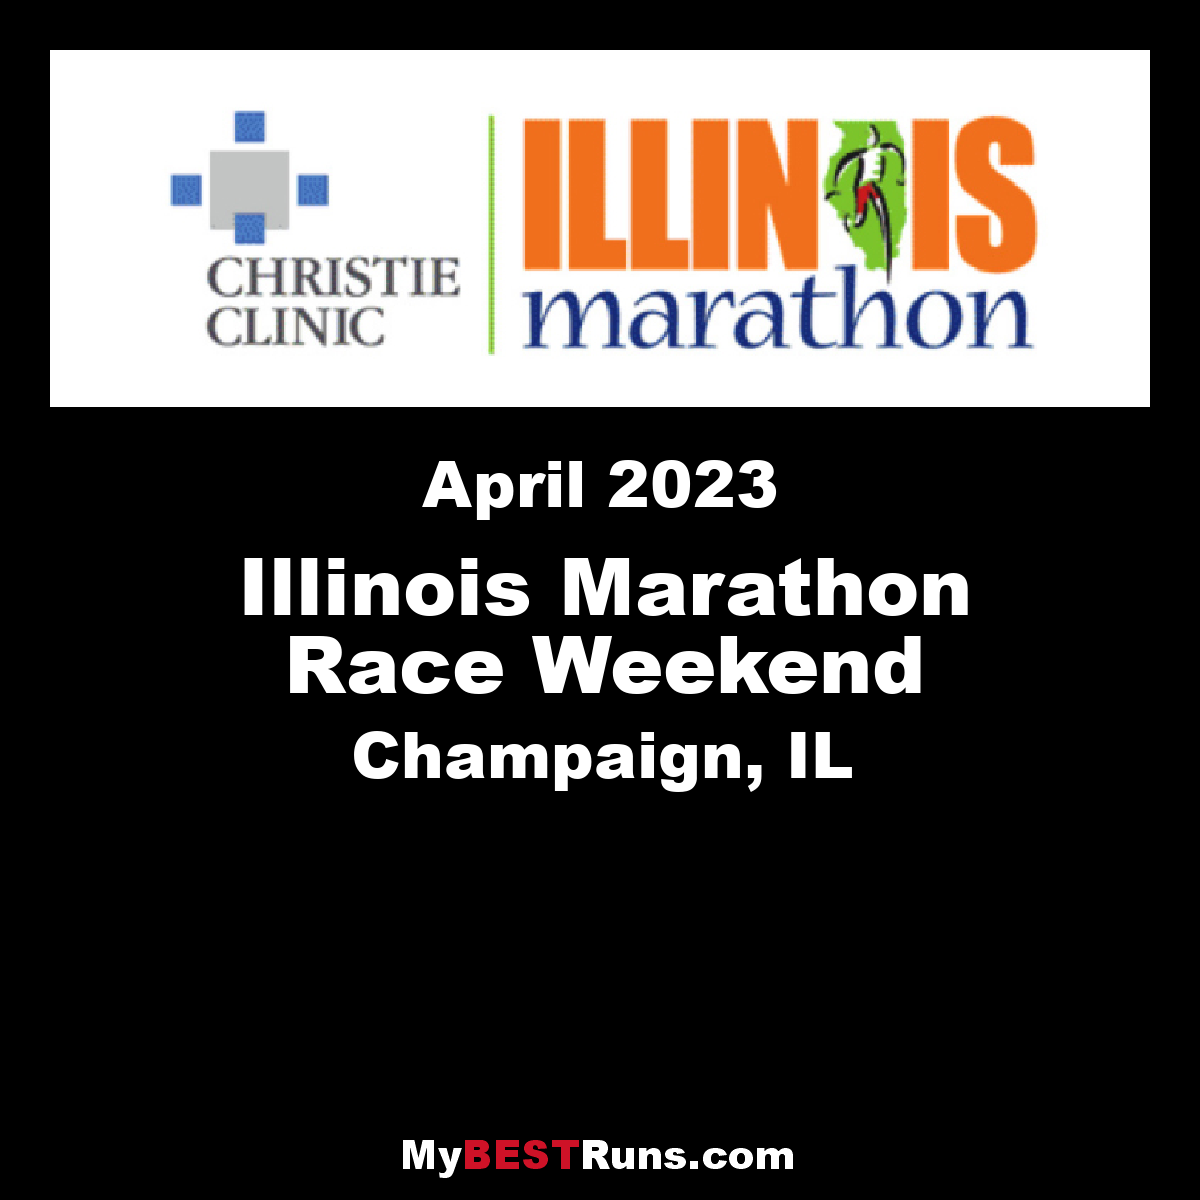 Illinois Marathon Race Weekend